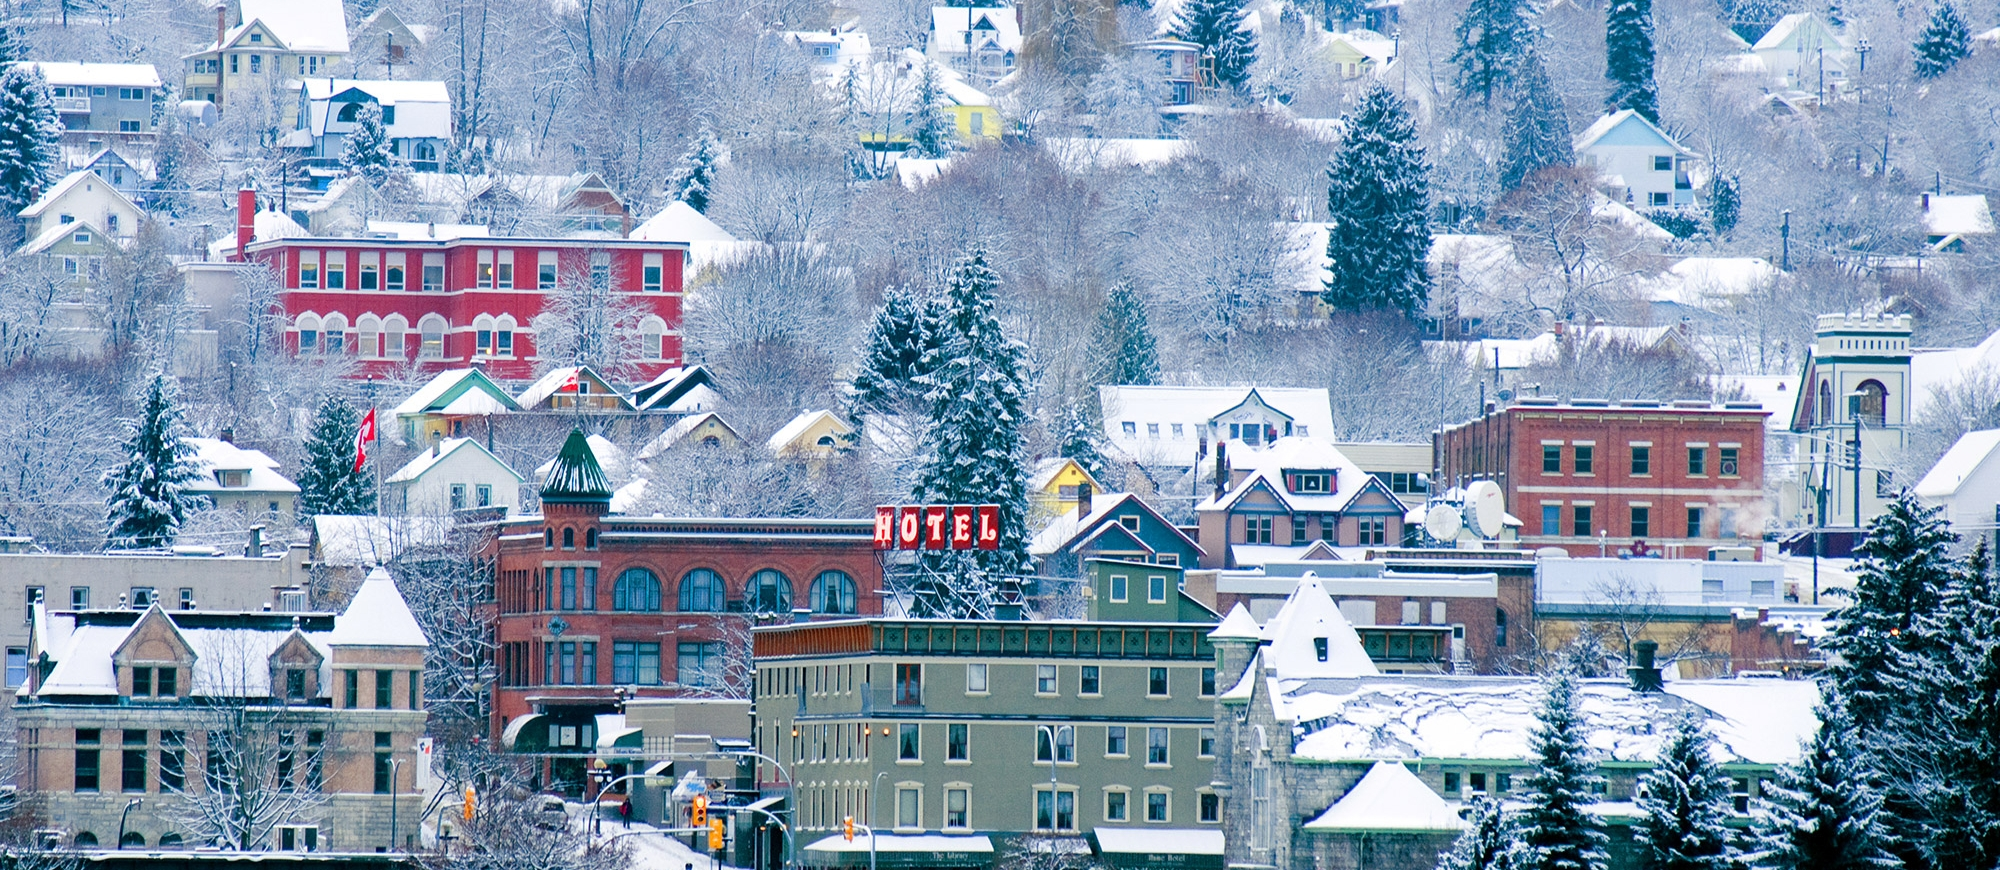 The Hume Hotel and surrounding heritage buildings covered in snow in Nelson, BC